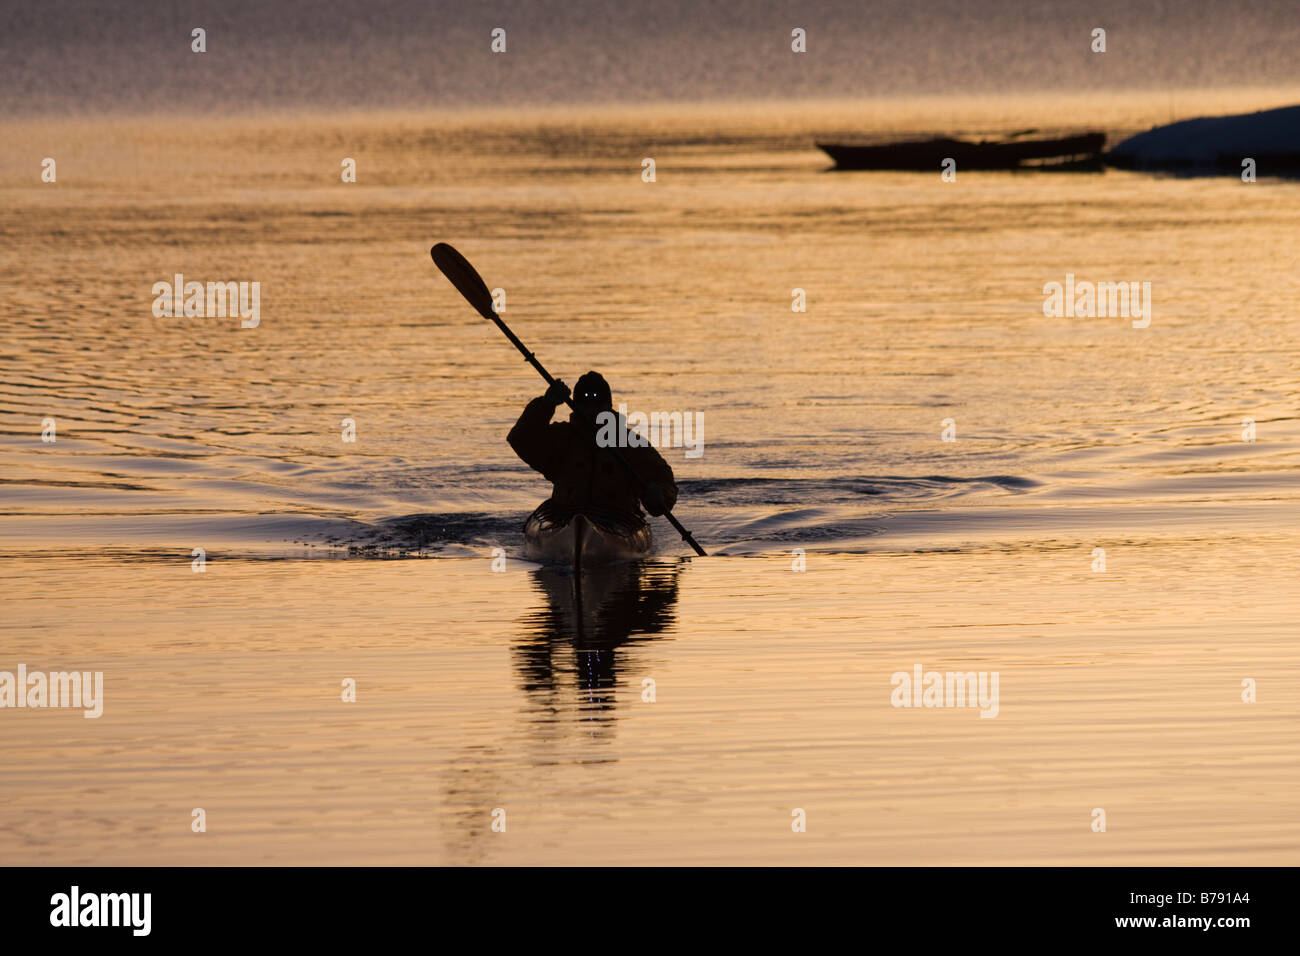 A man and his reflection kayaking at sunrise in winter on Lake Tahoe California Stock Photo